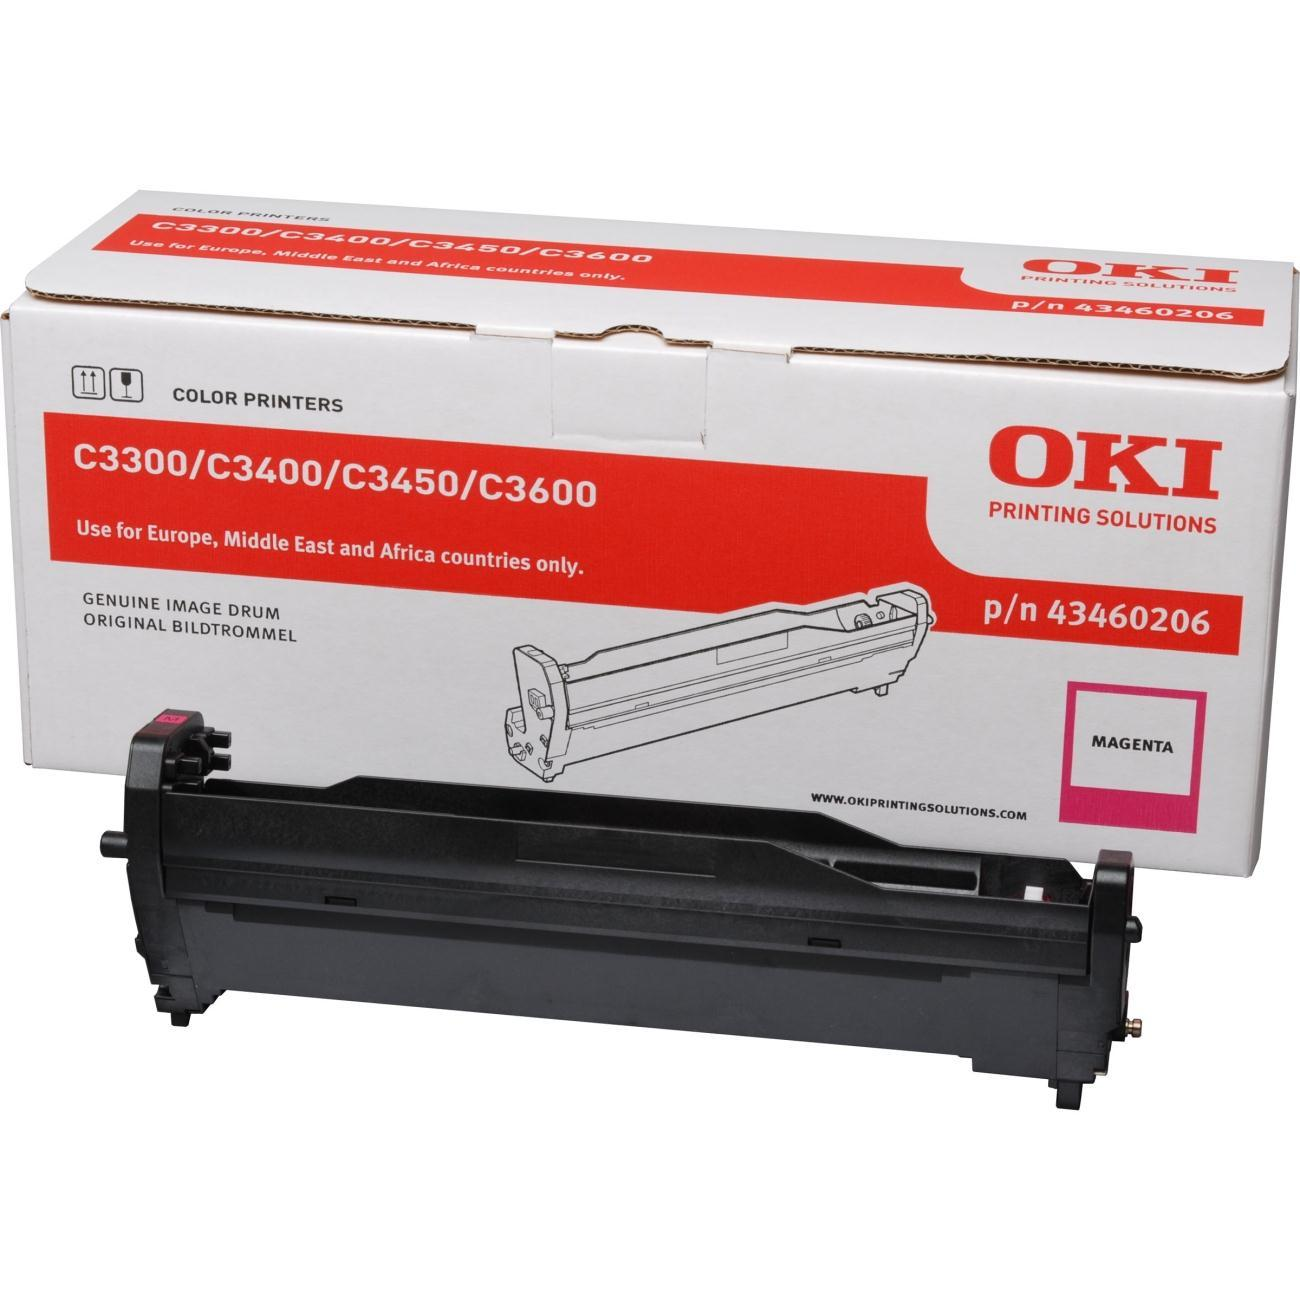 DRUM OKI OKIPAGE C3300Ν/C3400Ν EP Cartridge MAGENTA 43460206